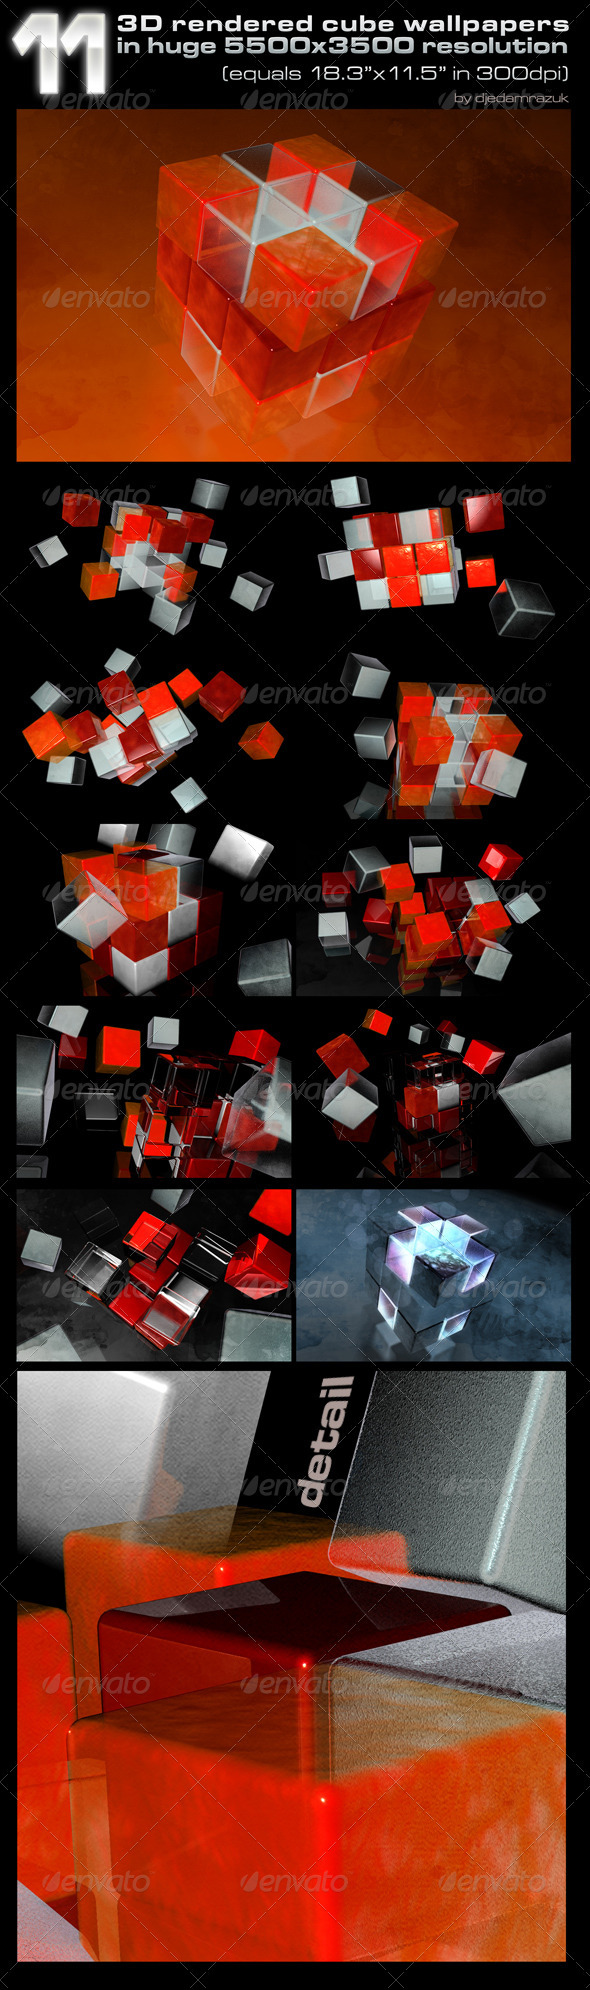 3D Rendered Wallpapers/Backgrounds - 3D Backgrounds